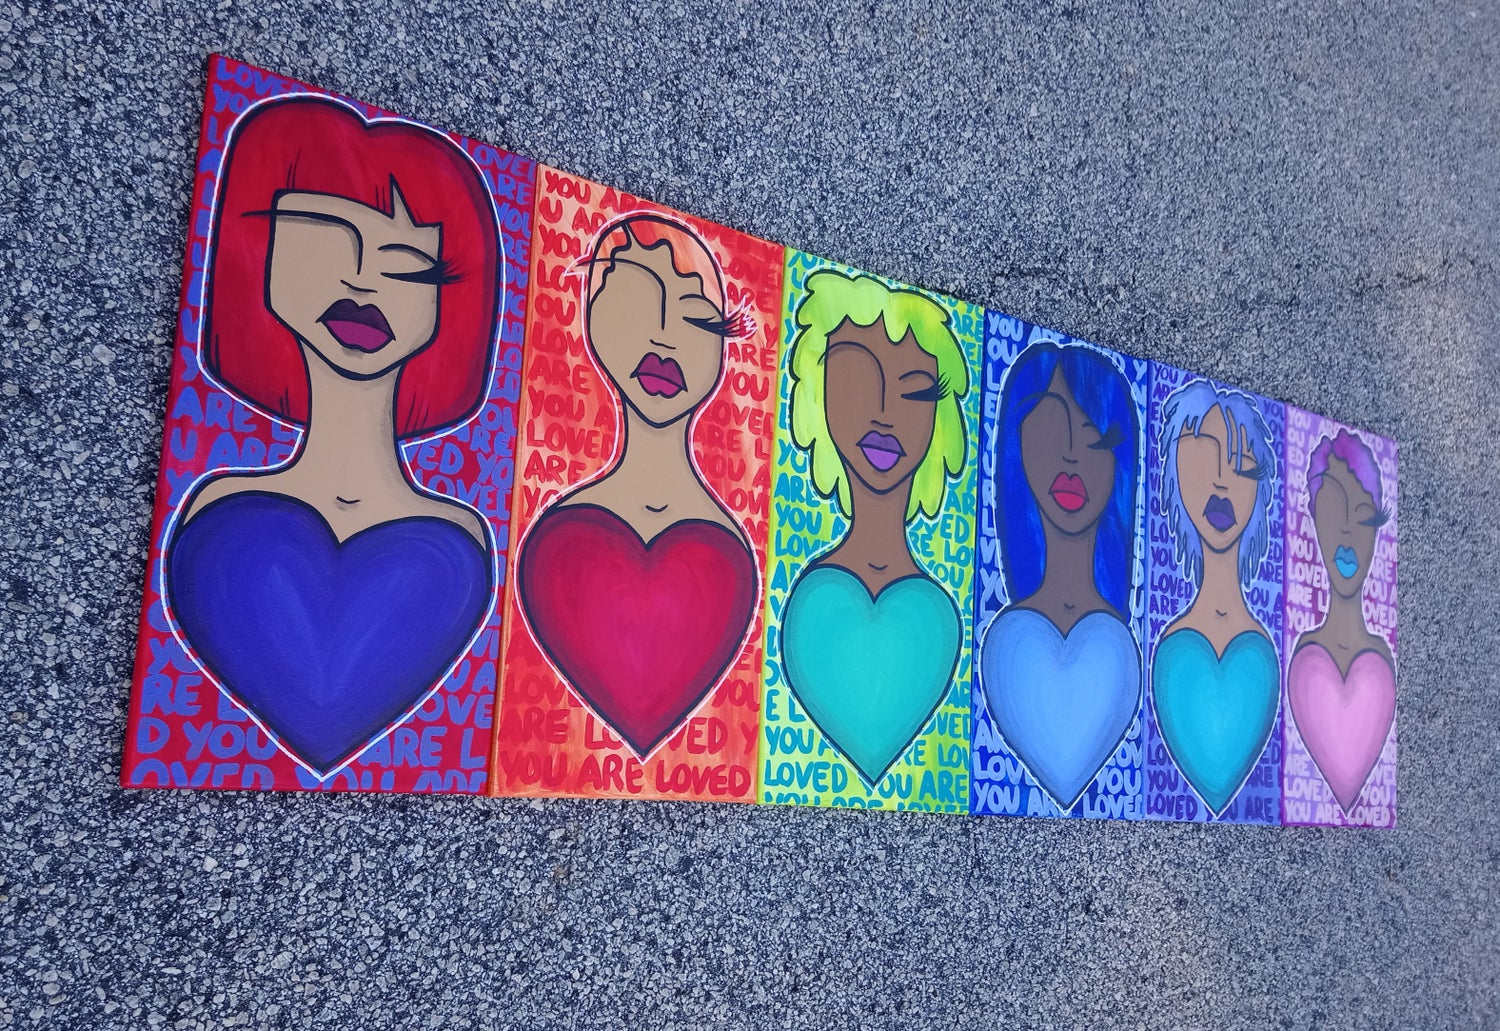 Image of Lil Love(d) Ones Paintings